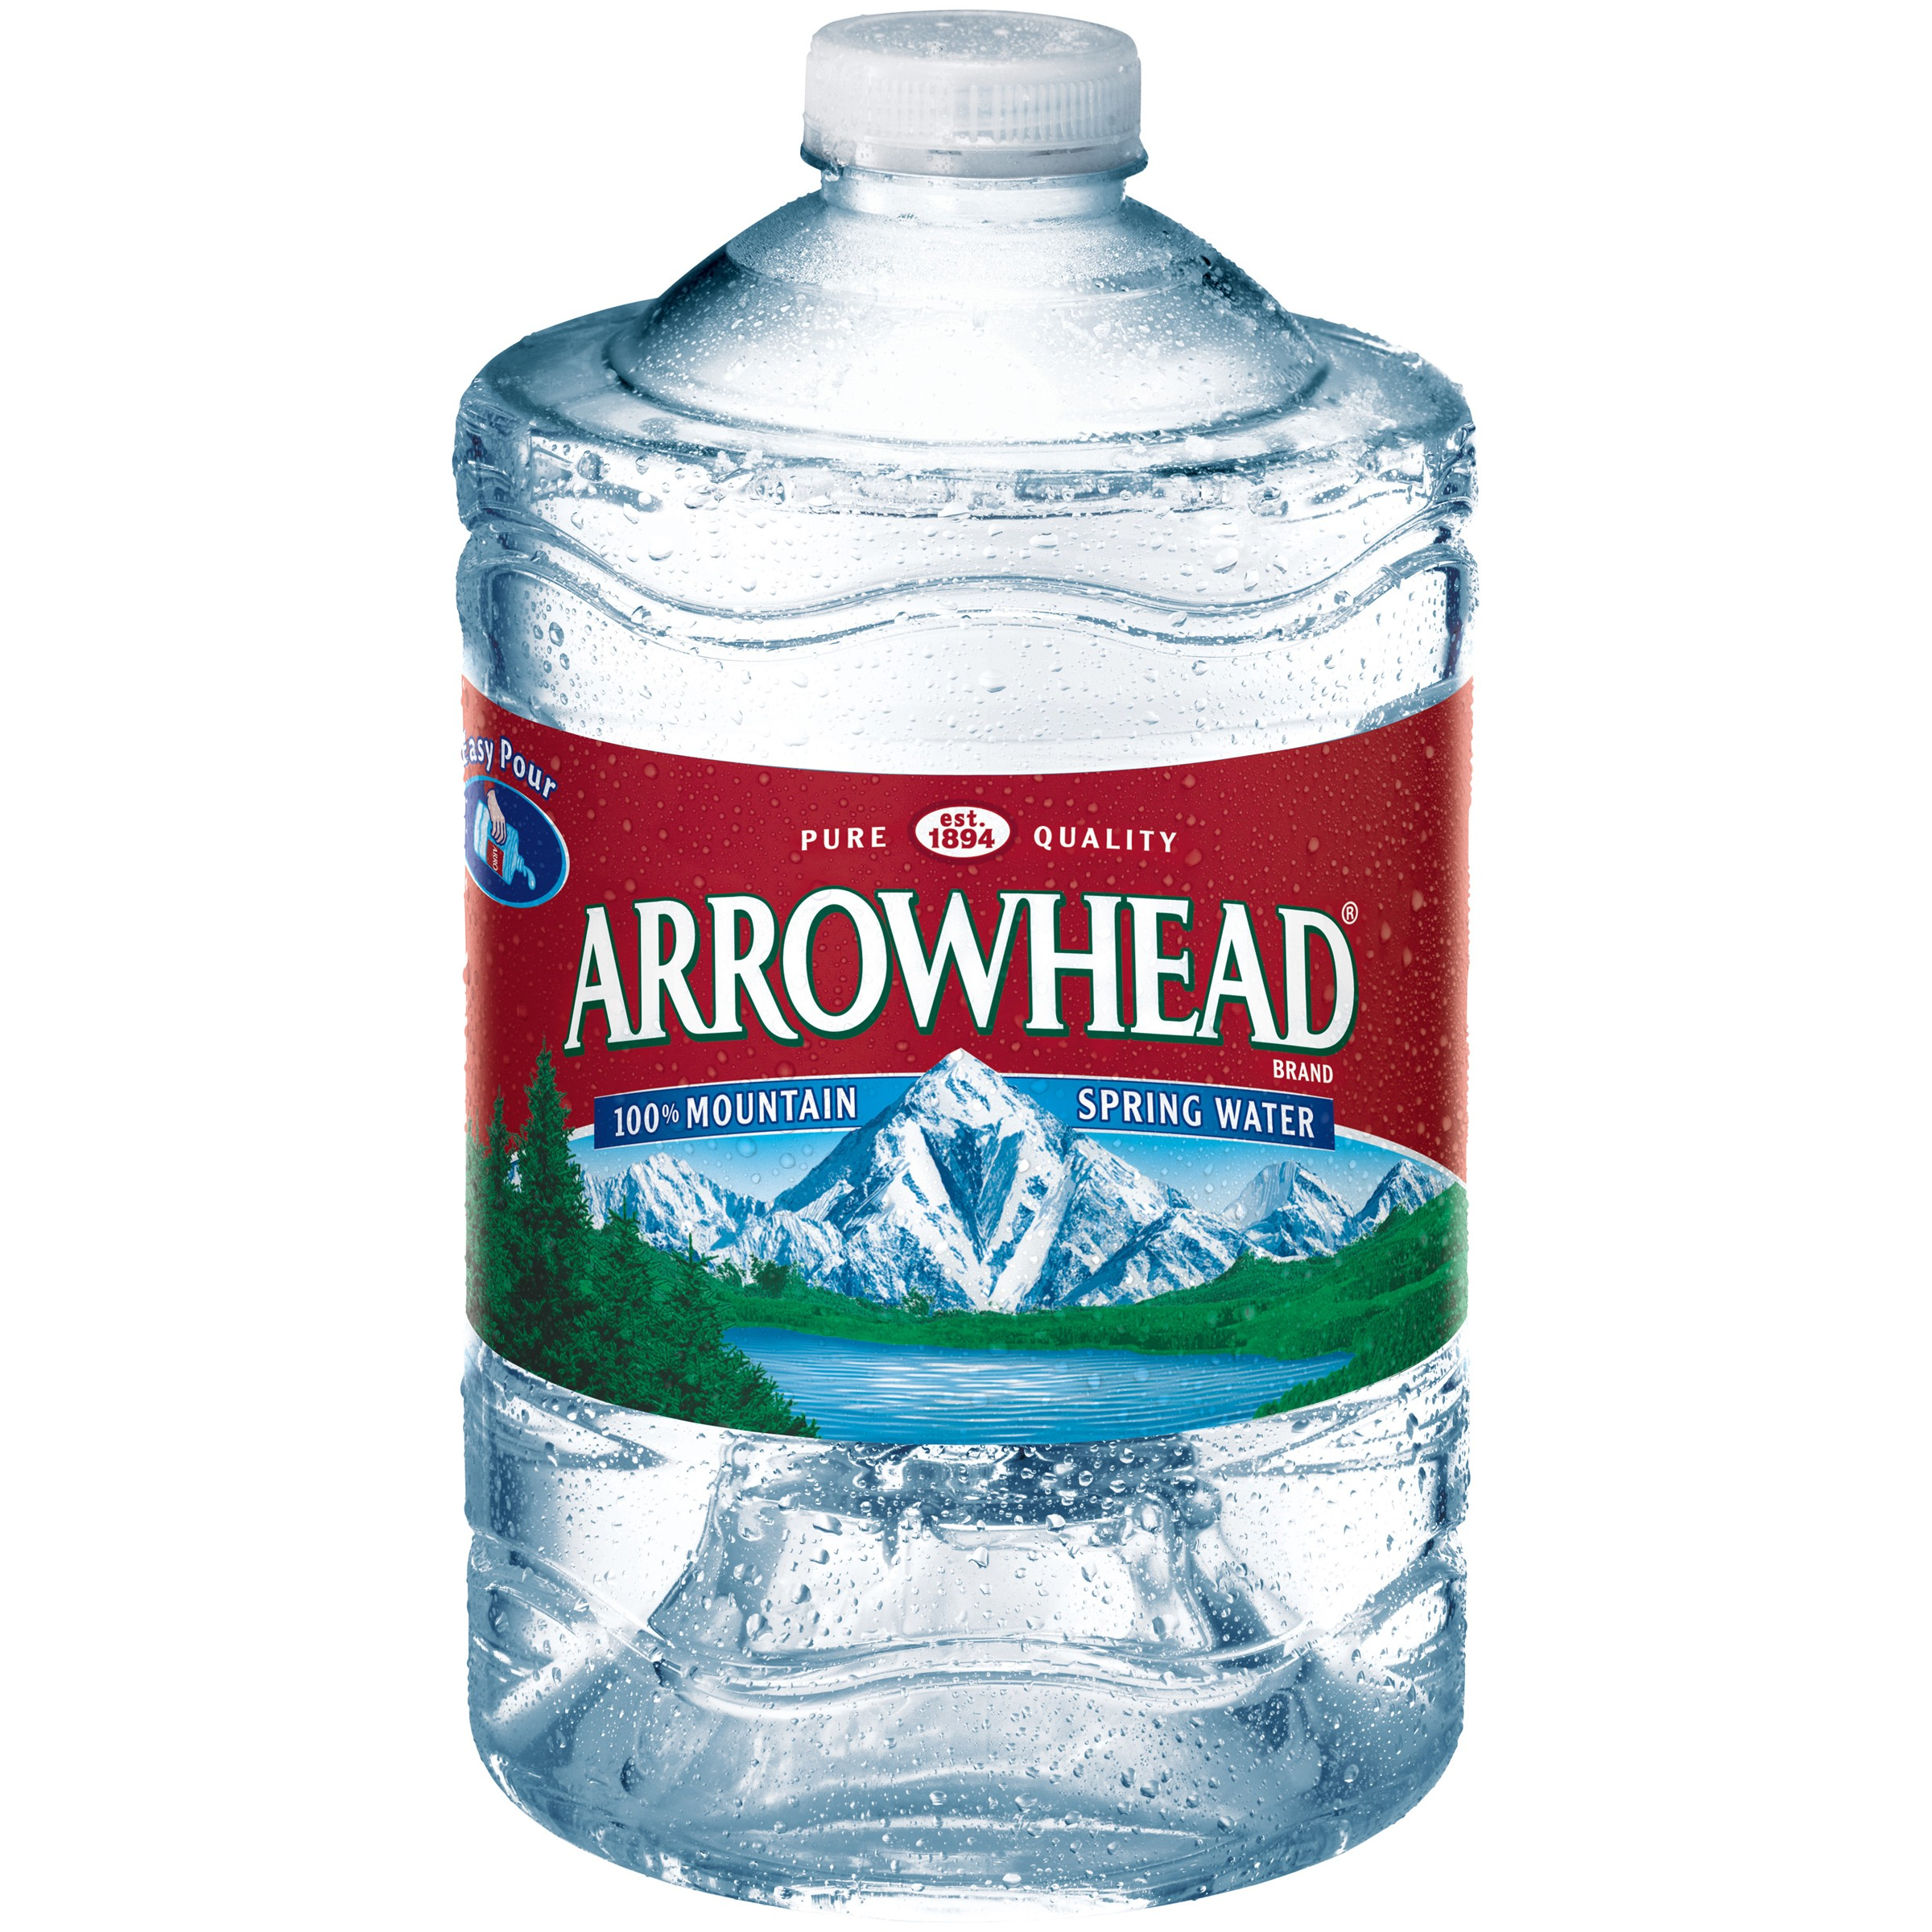 Who Owns Arrowhead Water